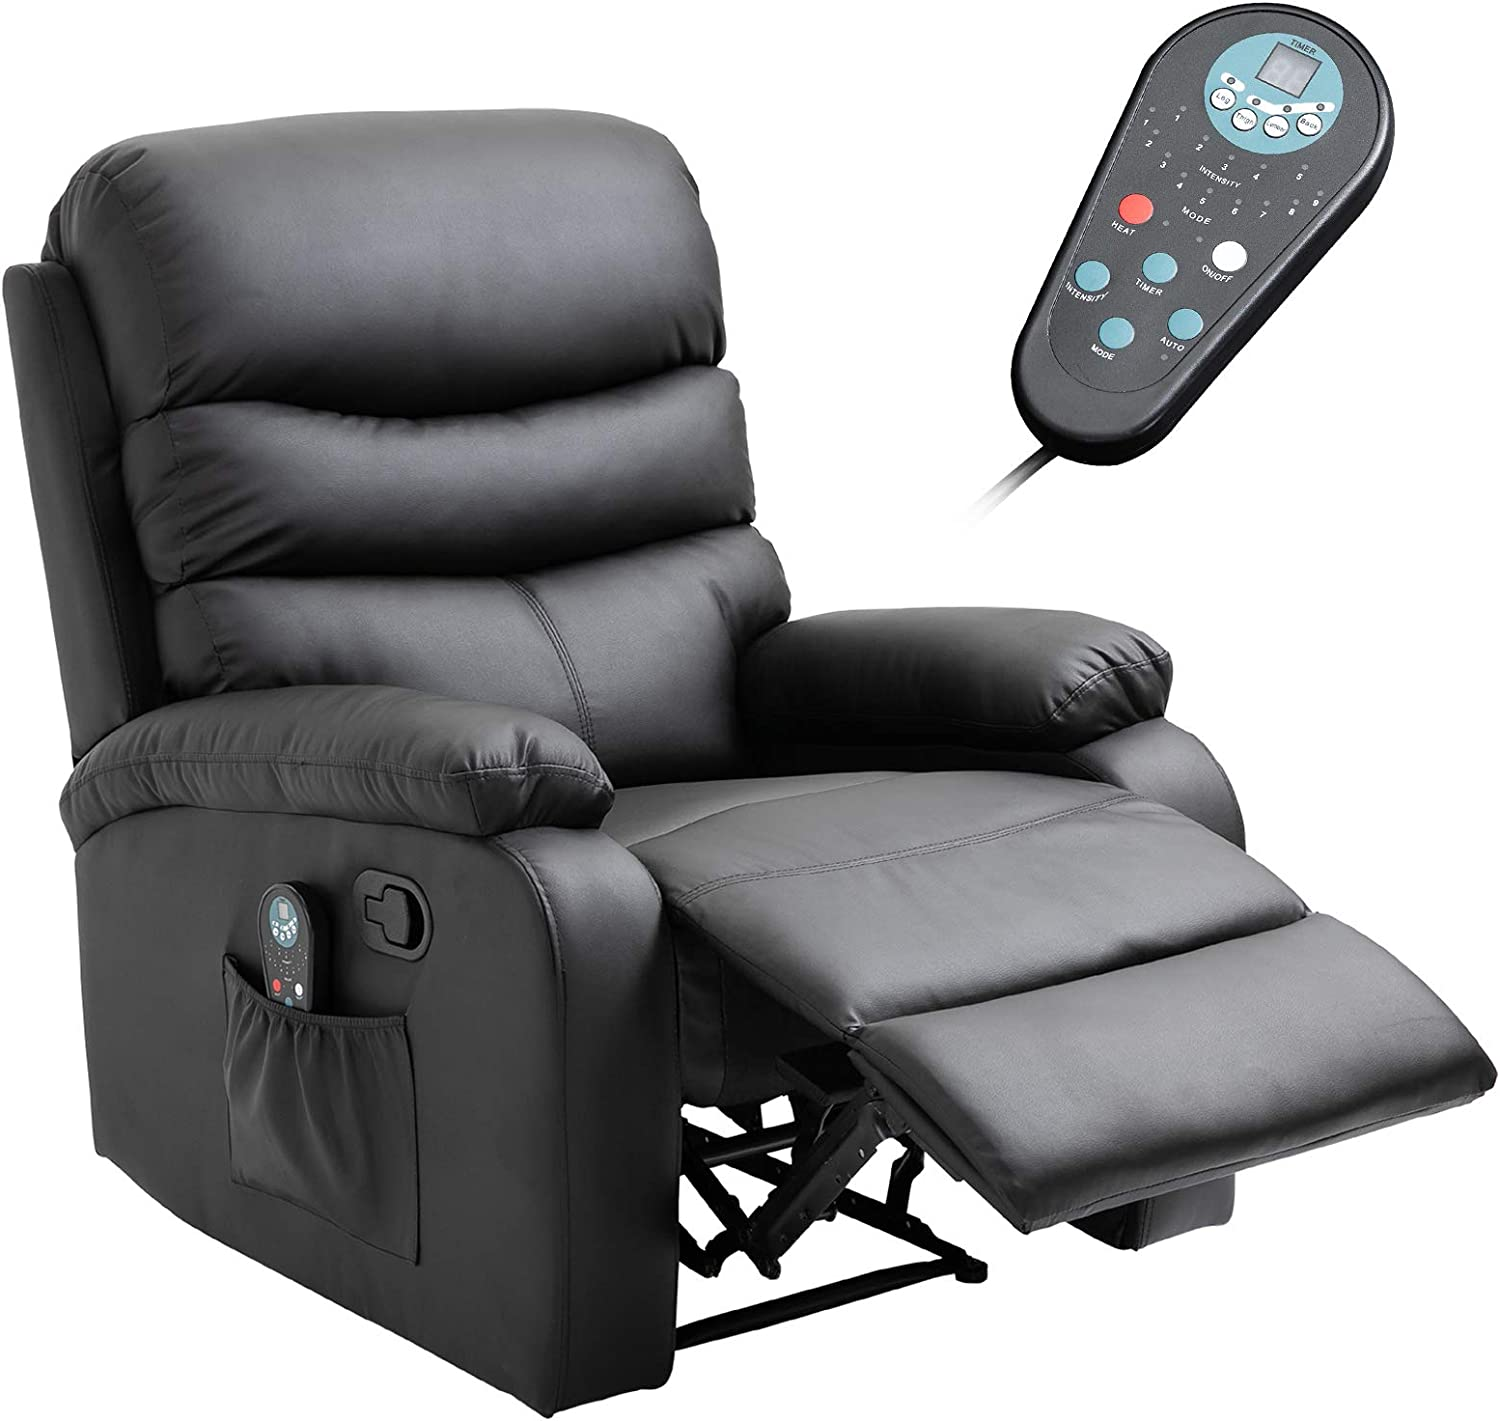 Homcom Manual Massage Recliner Chair With Heat And Remote Control 8 Massaging Points Pu Leather Black Furniture Decor Amazon Com